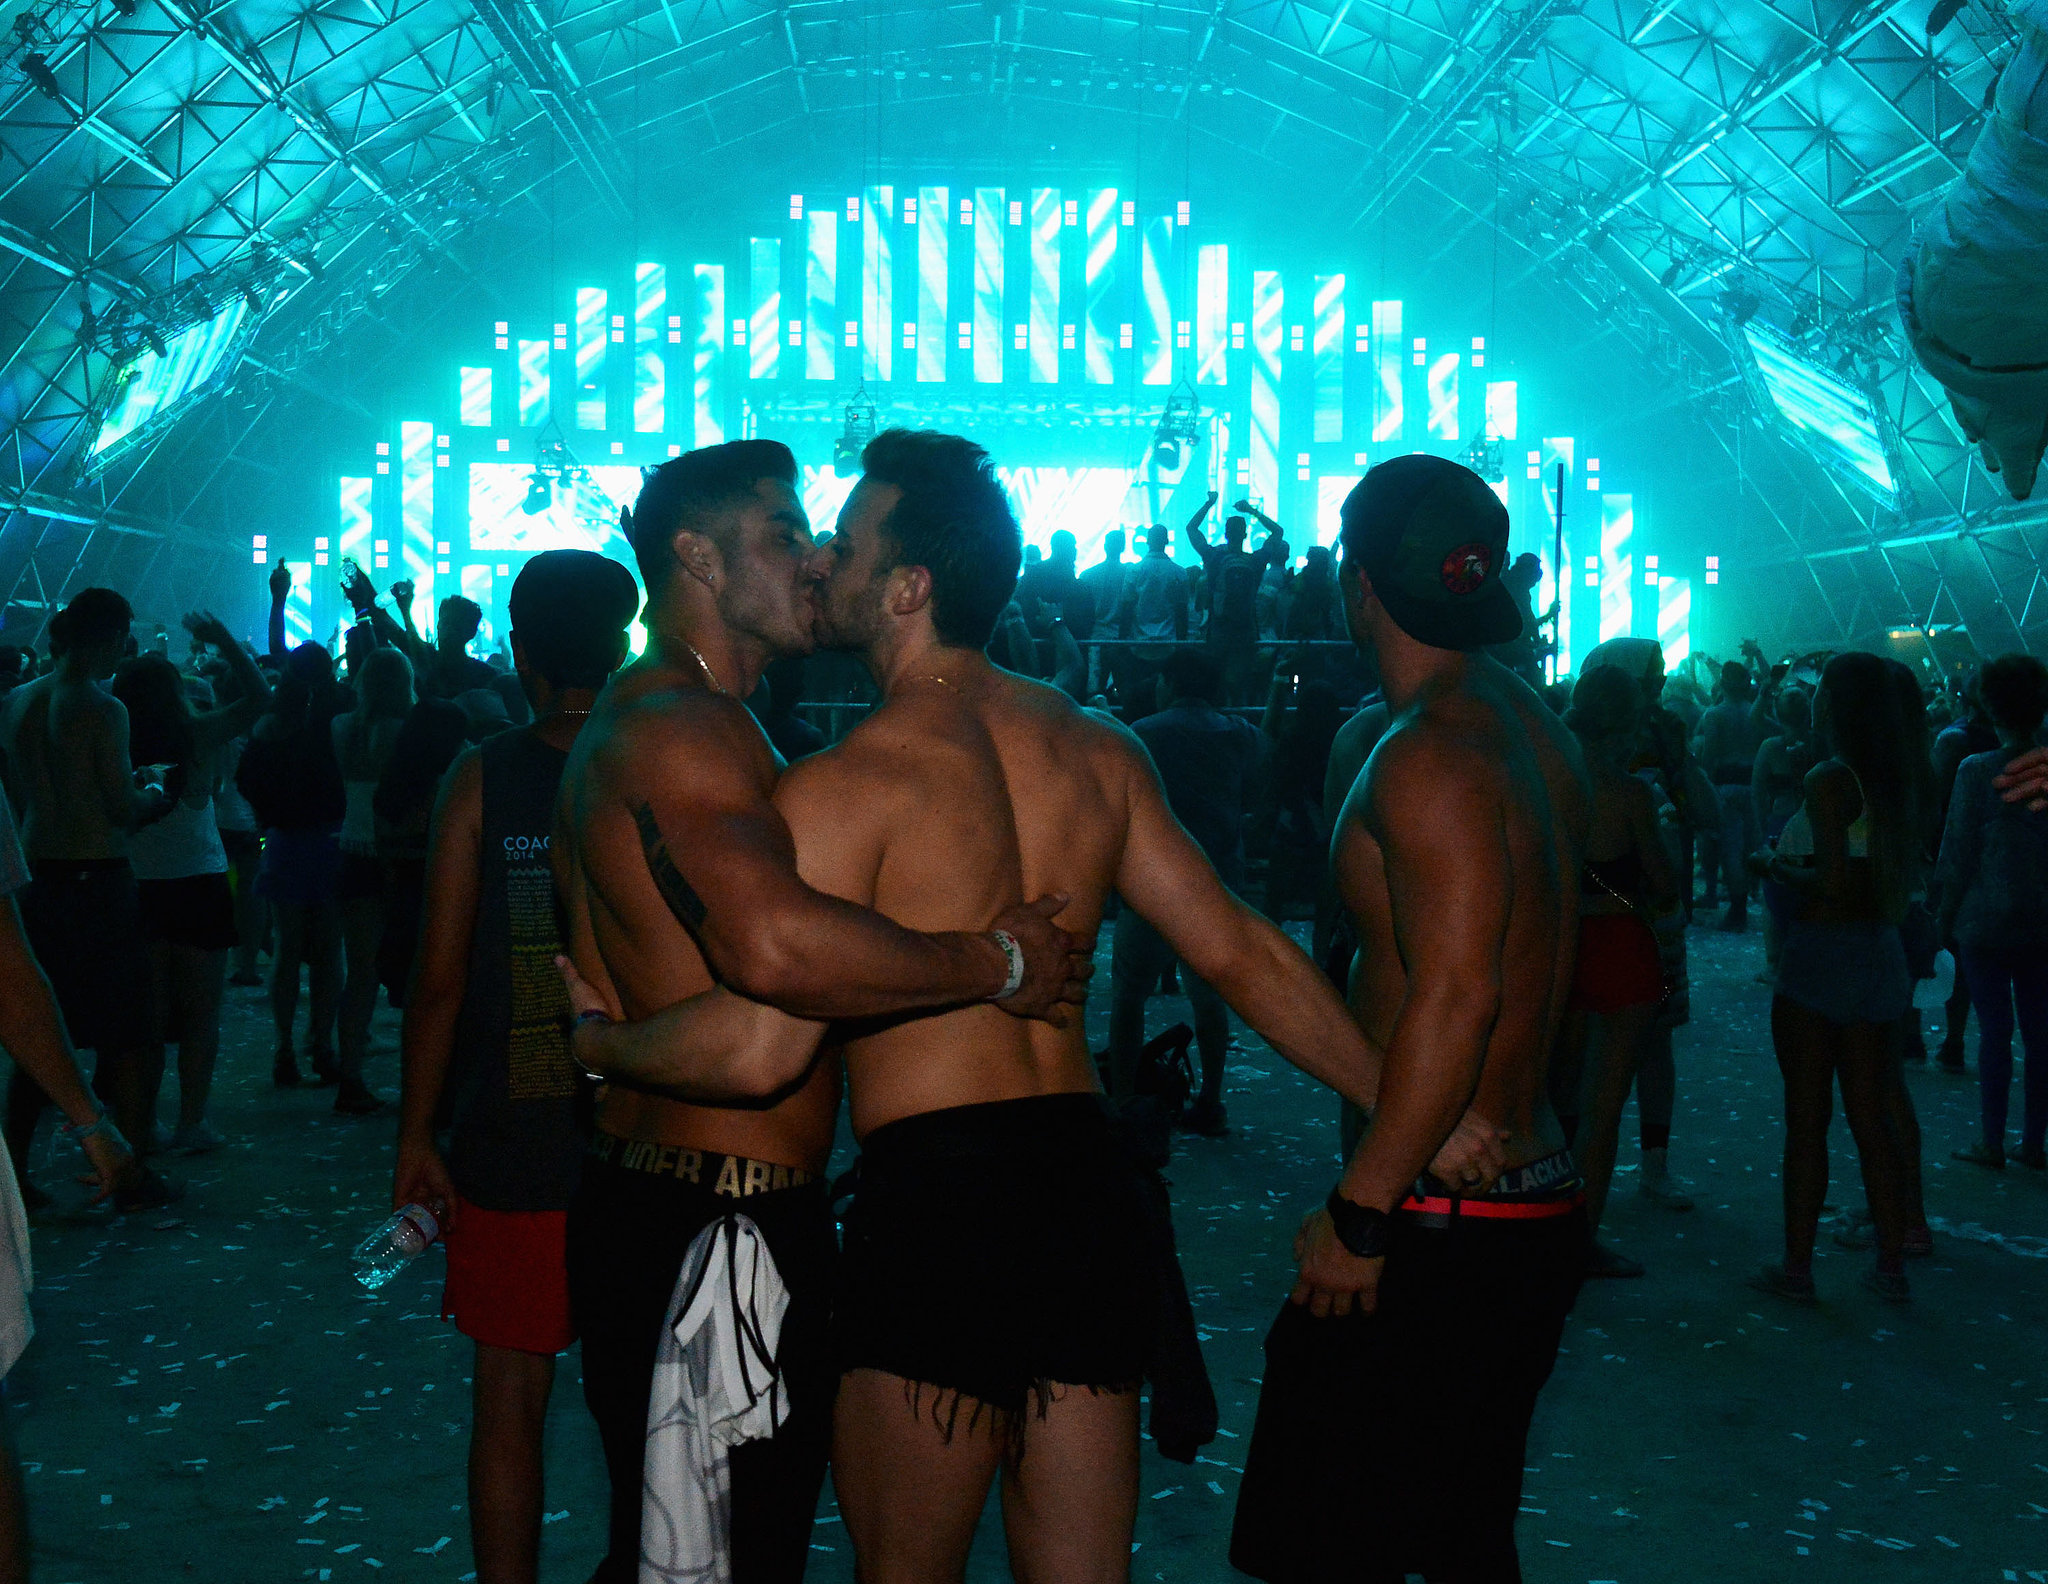 Two guys kissed at Coachella in Indio, CA.